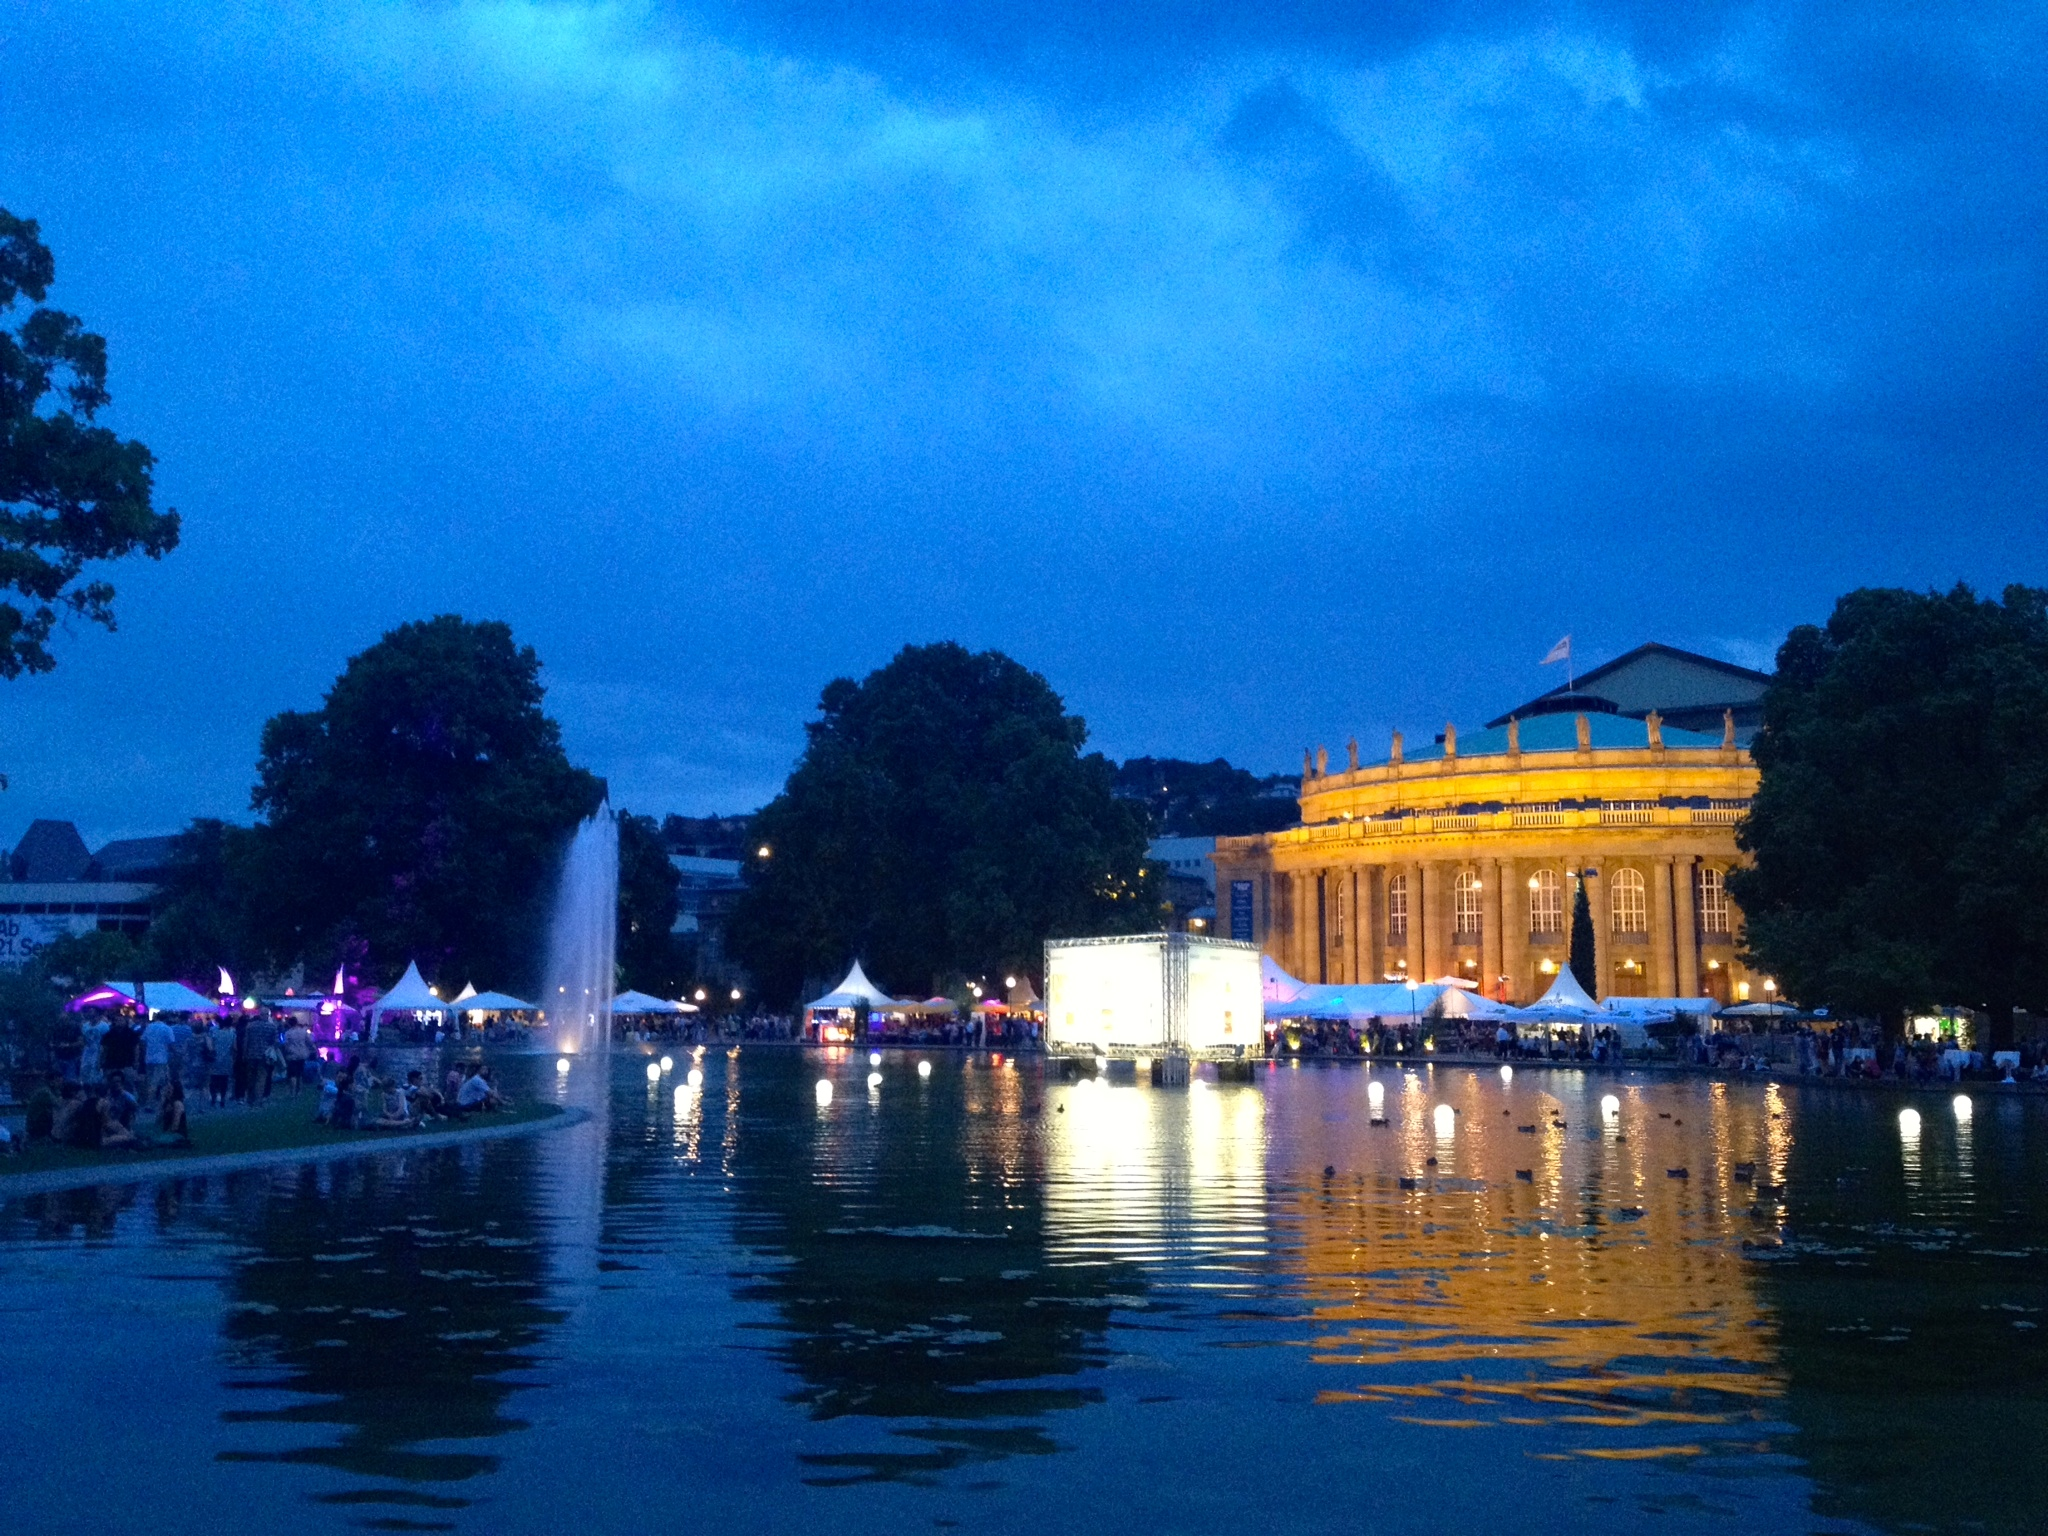 The  Sommerfest  at night with a view of the  Opernhaus